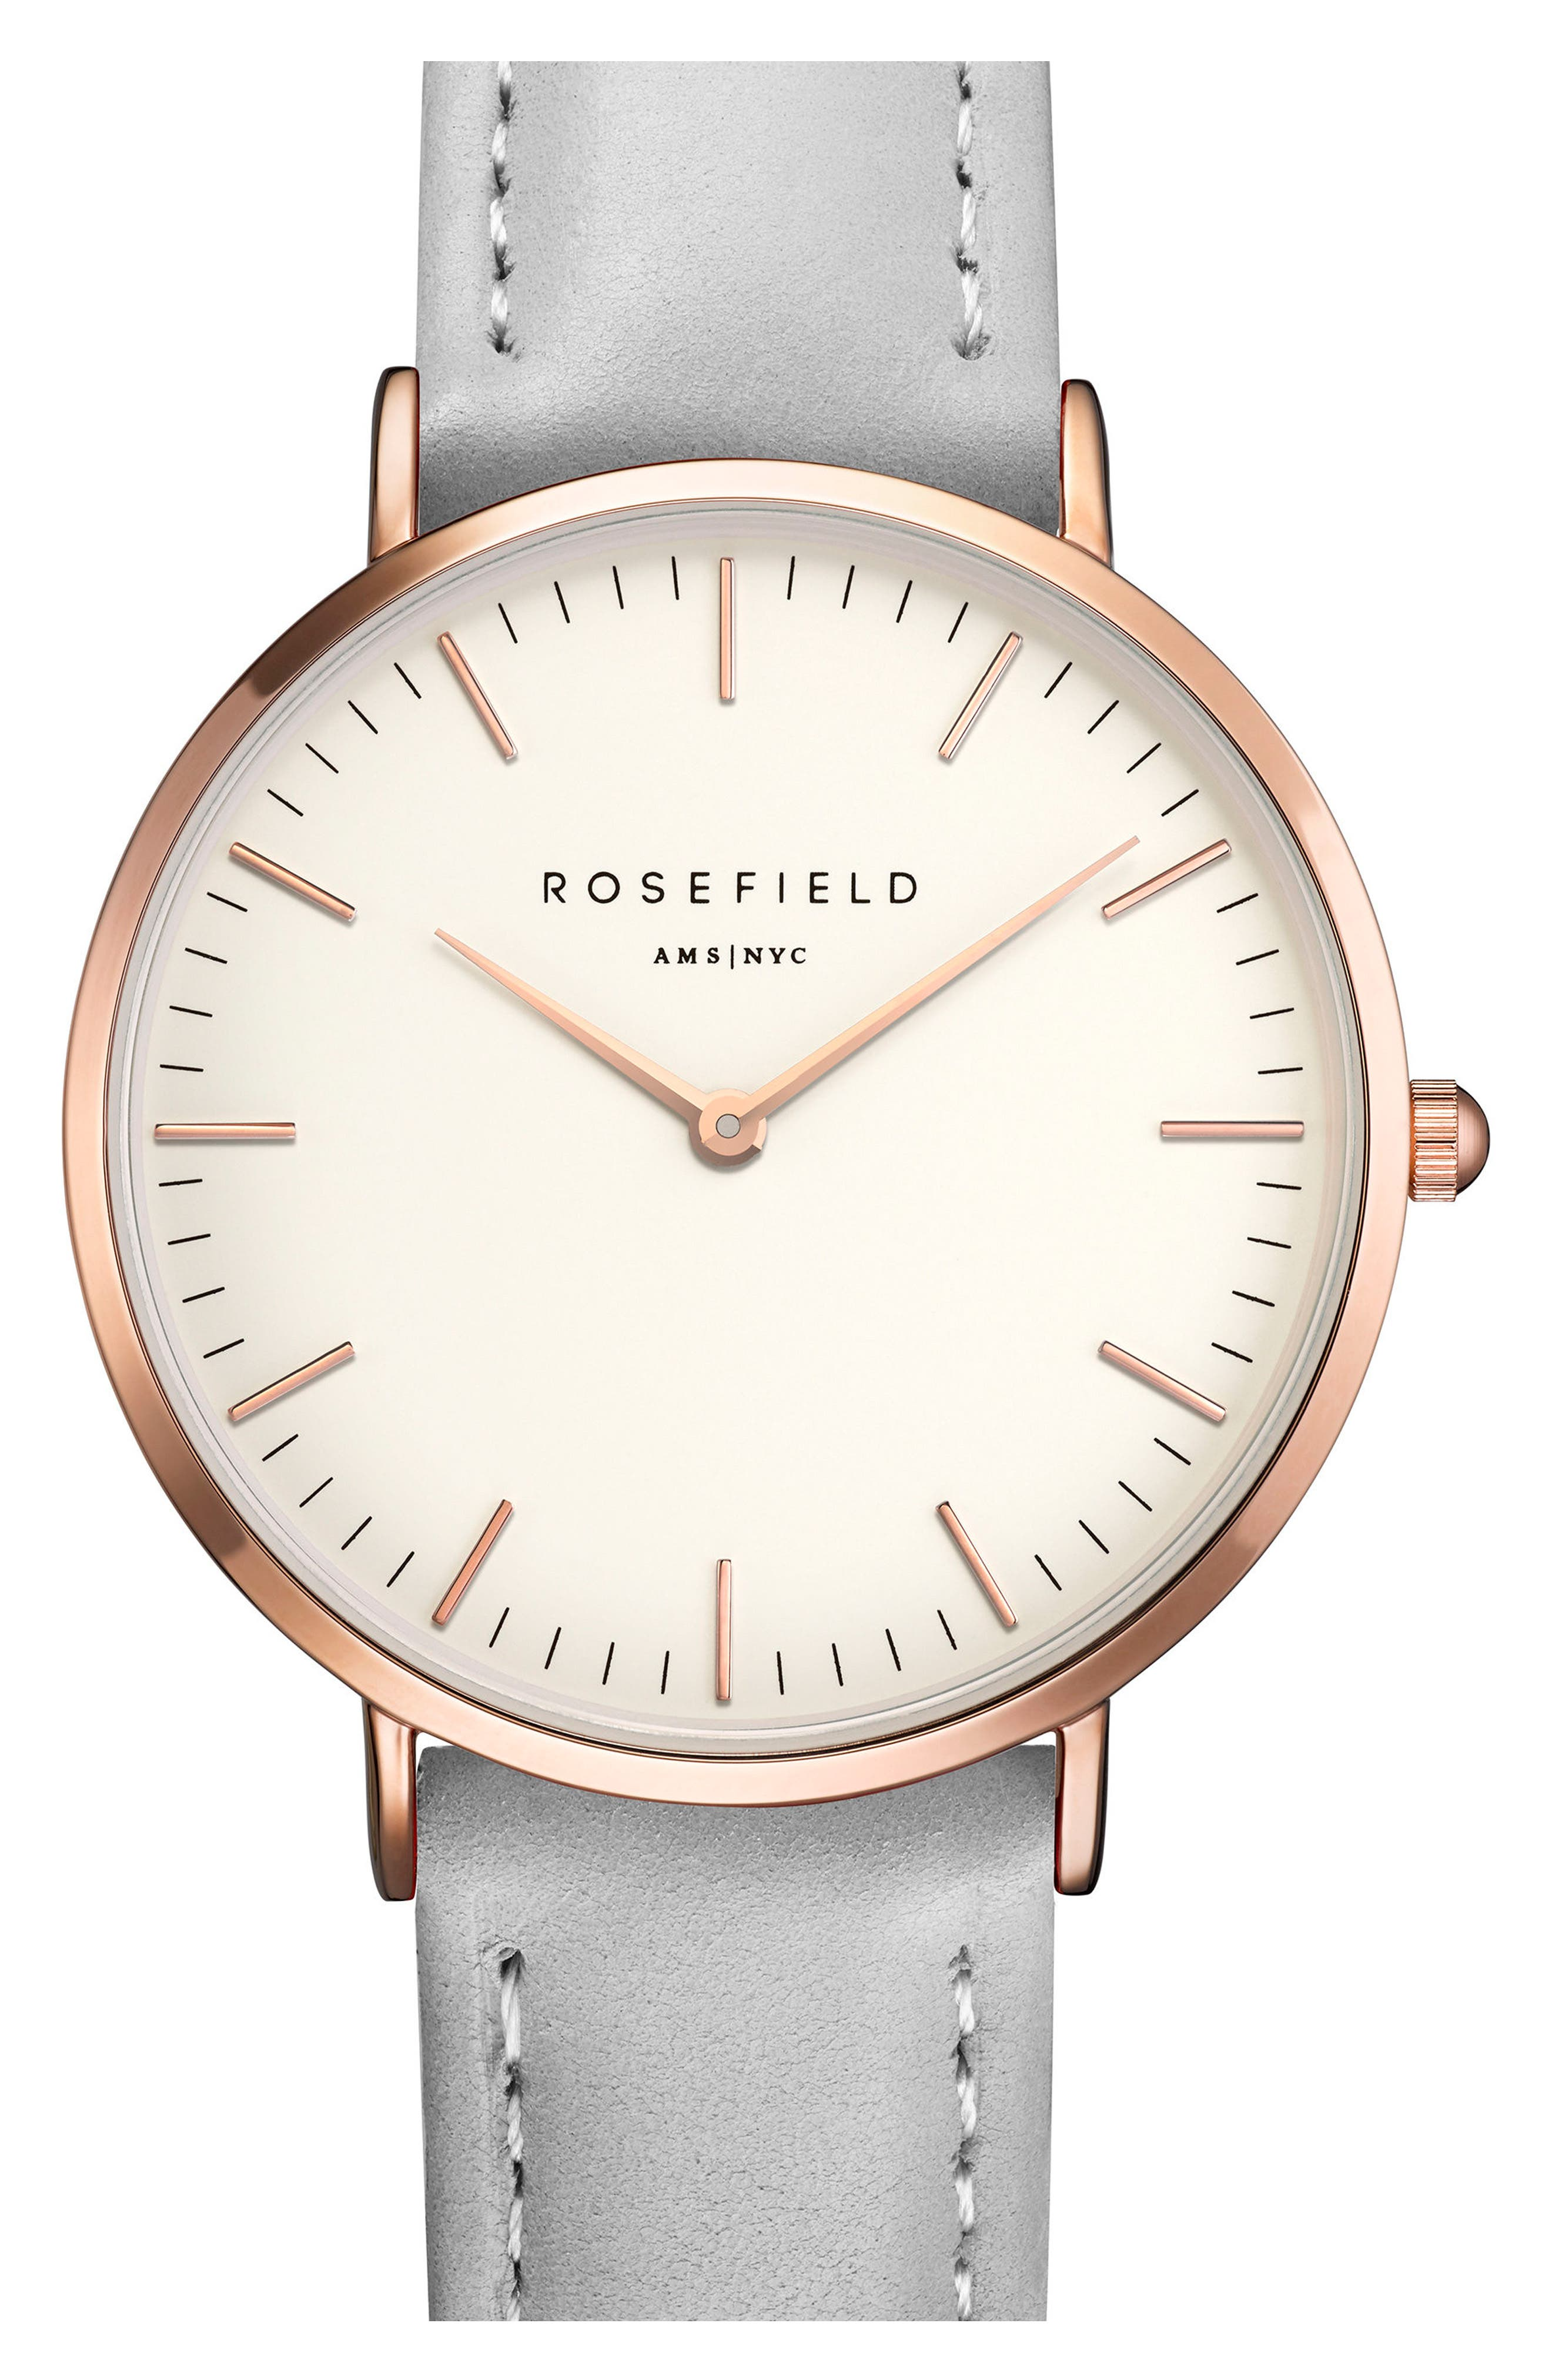 ROSEFIELD, Tribeca Leather Strap Watch, 33mm, Main thumbnail 1, color, GREY/ WHITE/ ROSE GOLD